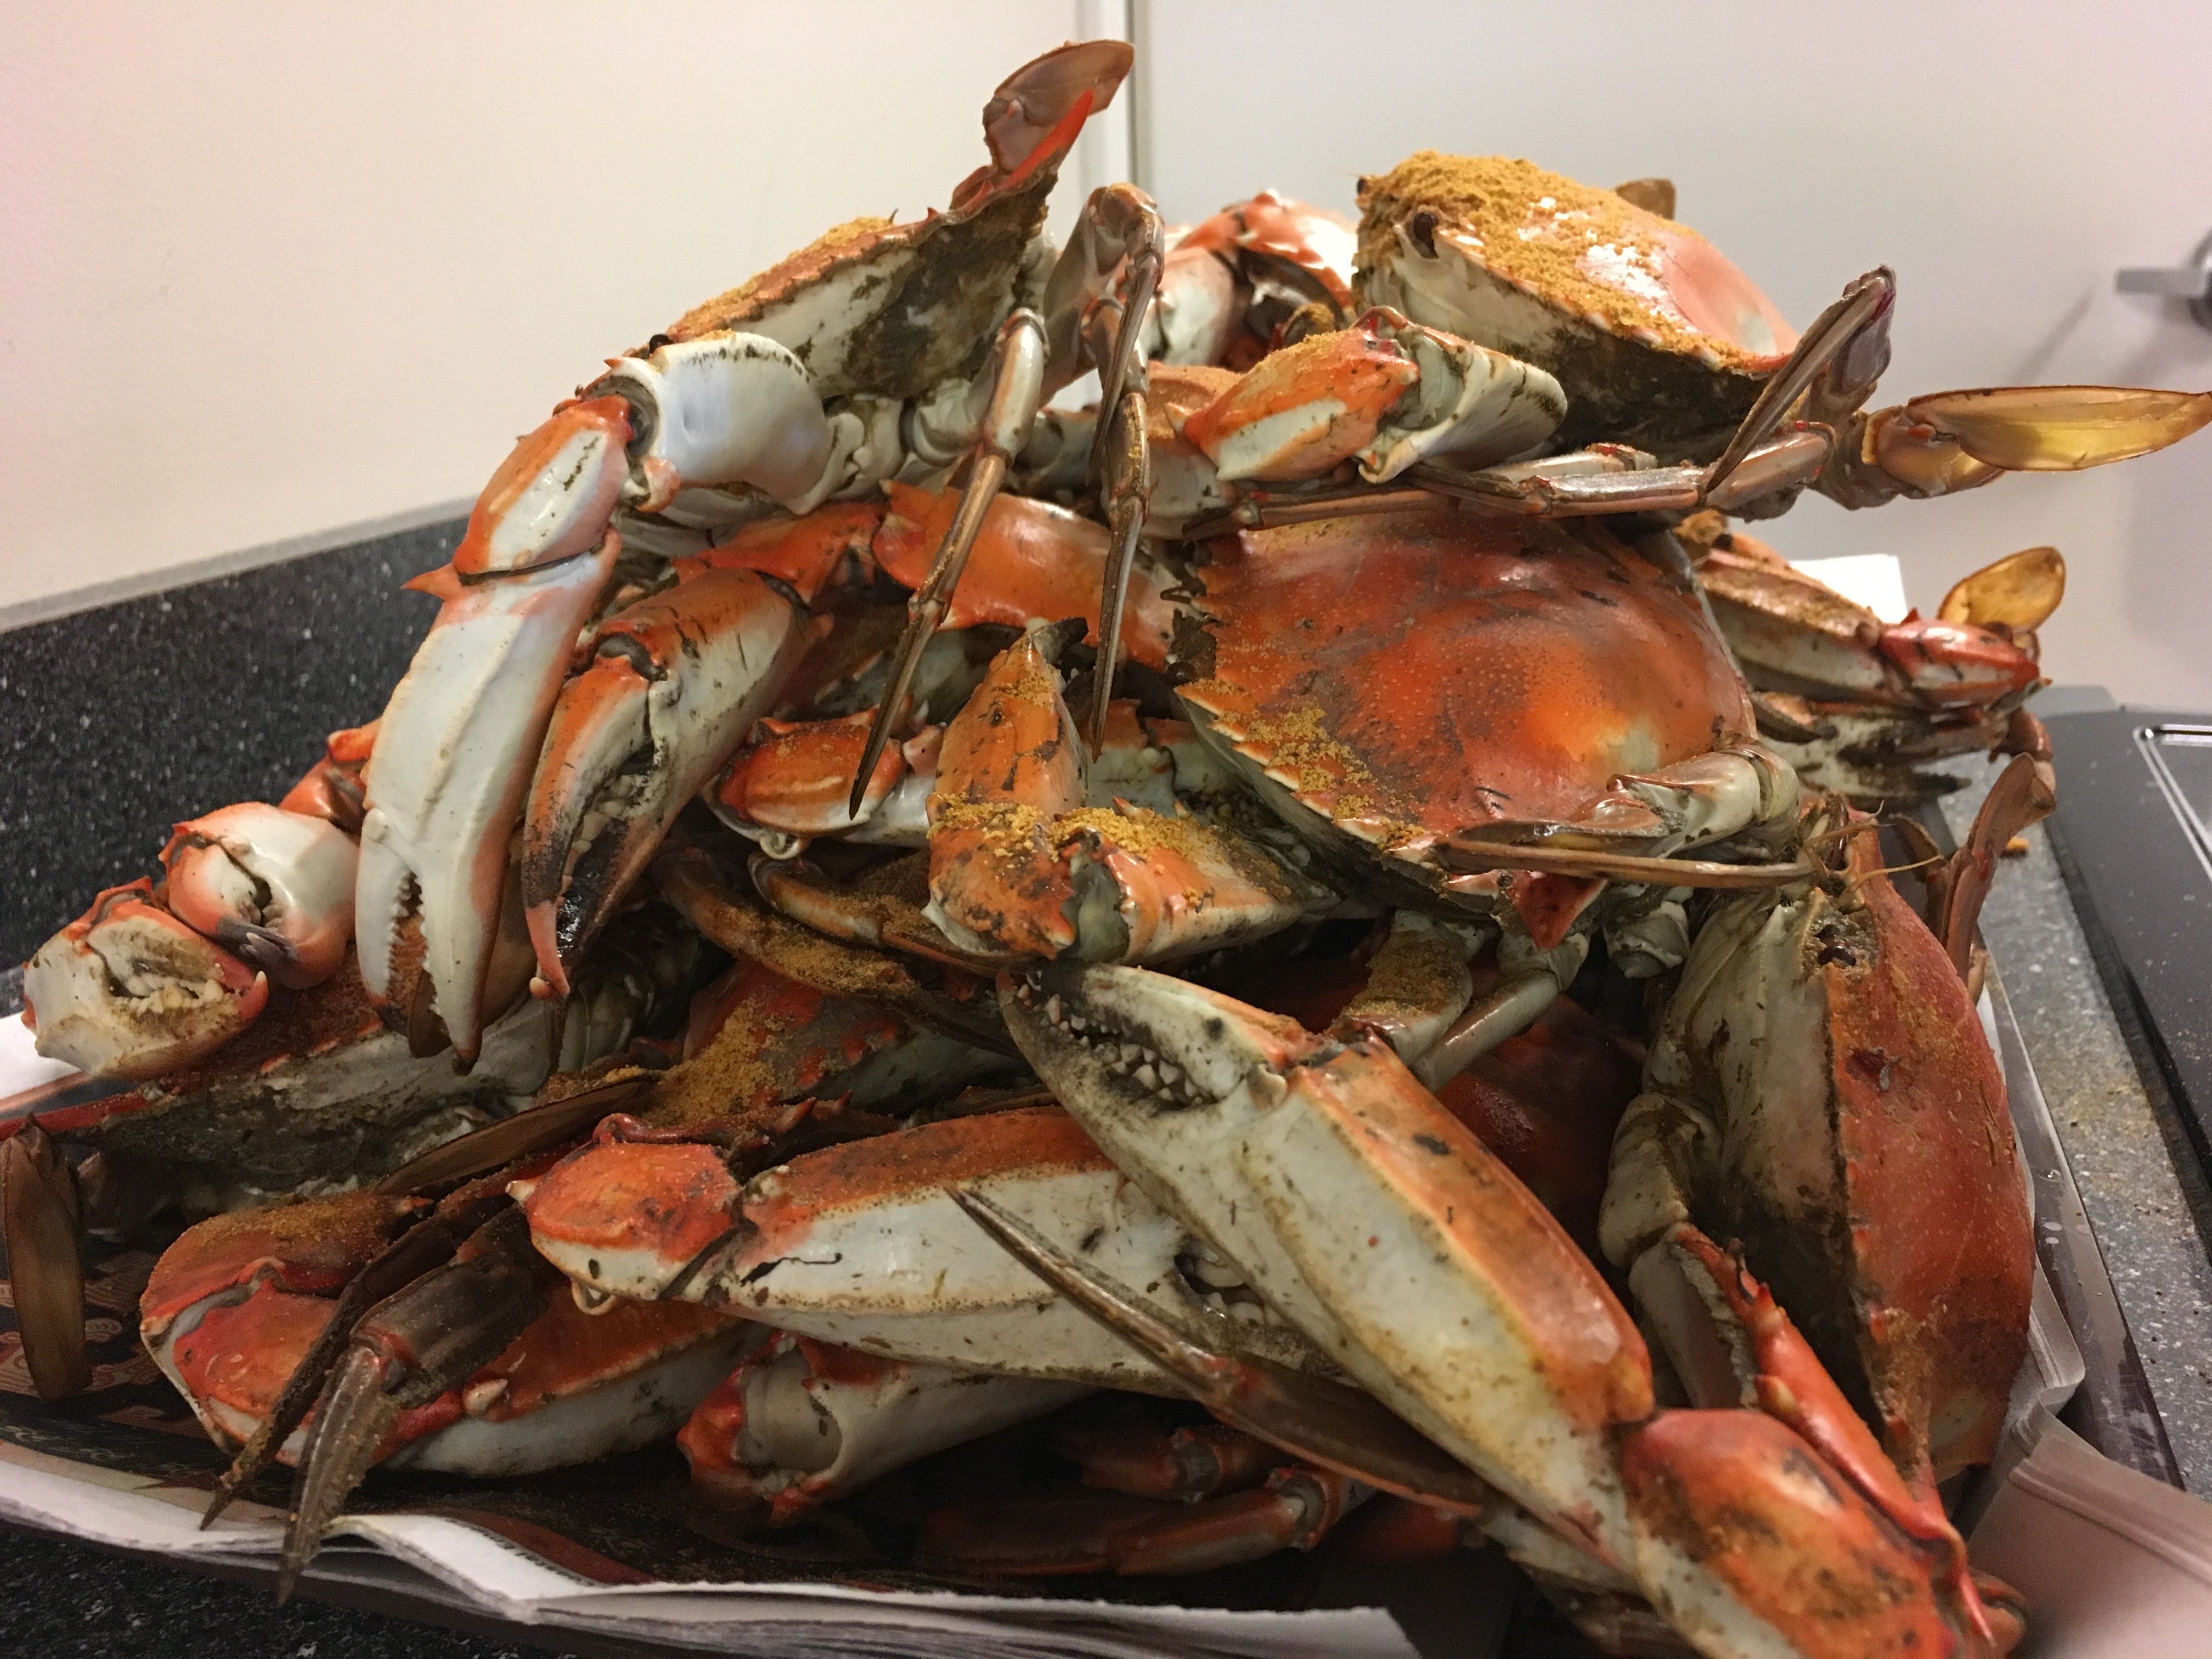 Georgia blue crab is the cornerstone of Georgia low country holiday favorites like crab dressing and crab stew.  UGA Cooperative Extension in Chatham County has teamed up with UGA Marine Extension and Georgia Sea Grant to help introduce Georgians the nutritious and delicious seafood harvested from the state's coastal waters through the Ocean to Table series.